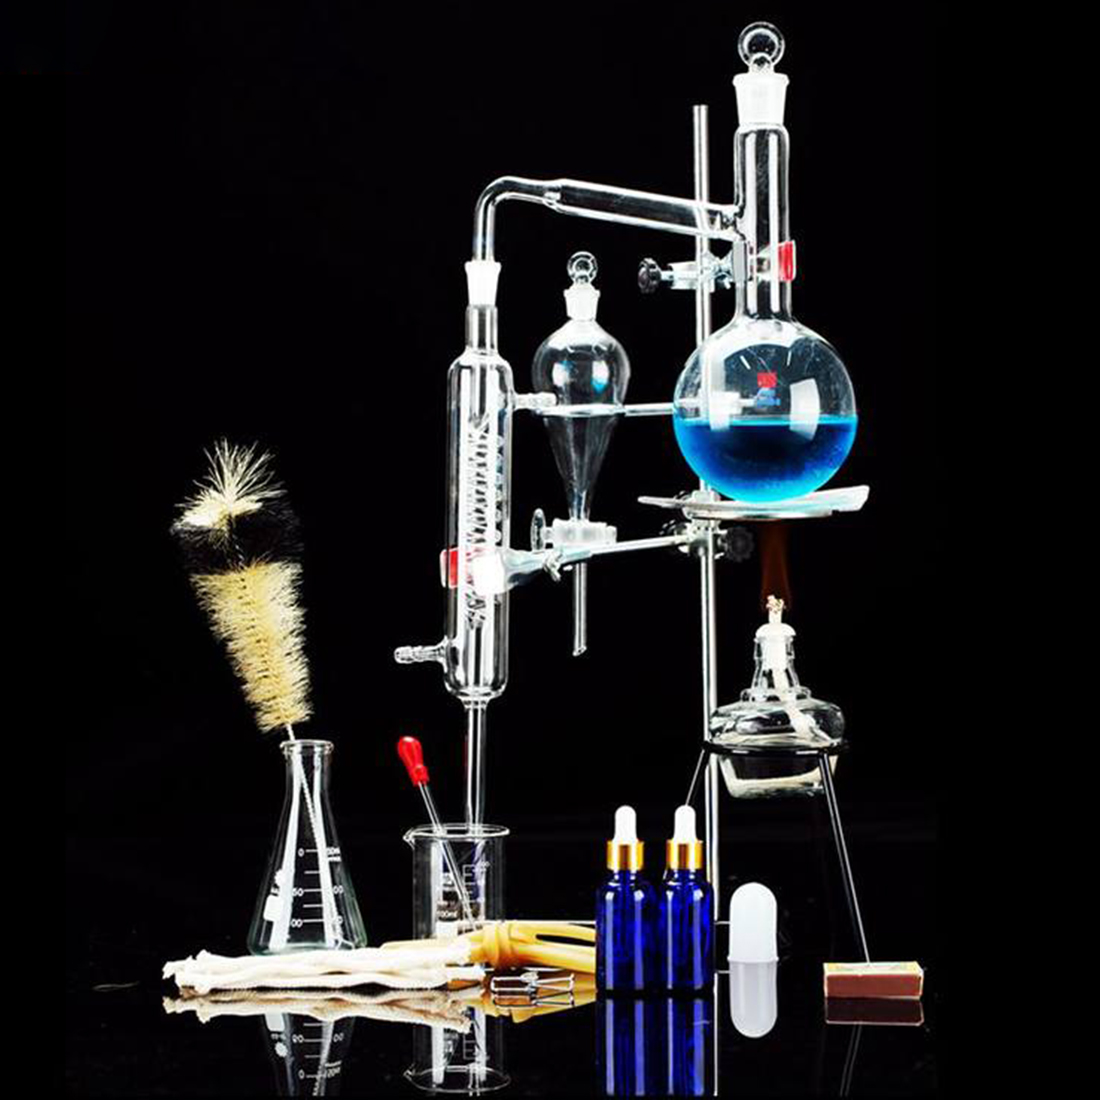 Distiller Limbeck Glass Distilled Water Device Chemical Teaching Instrument for Laboratory kids children educational science toyDistiller Limbeck Glass Distilled Water Device Chemical Teaching Instrument for Laboratory kids children educational science toy